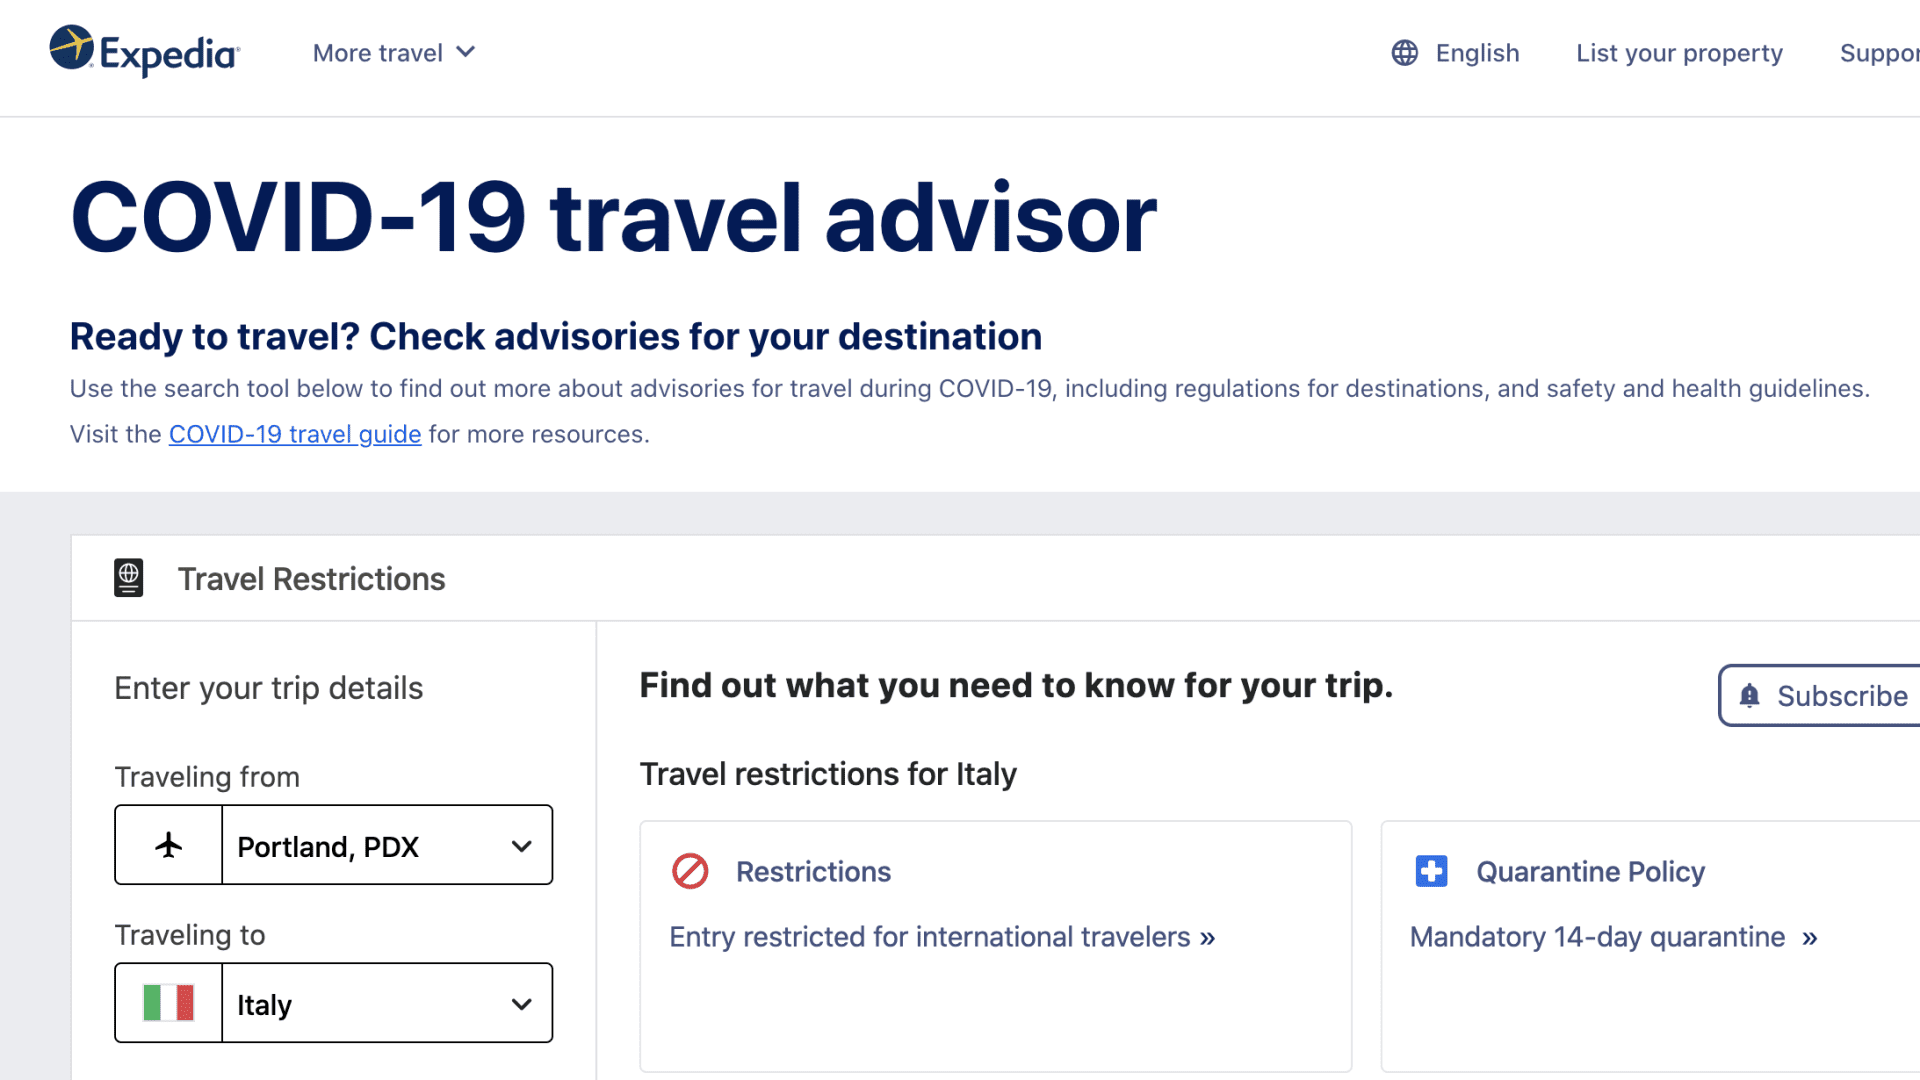 Expedia Group on April 8, 2021 introduced the COVID-19 Travel Advisor, a tech-enabled tool that provides consumers with current details about travel restrictions worldwide.